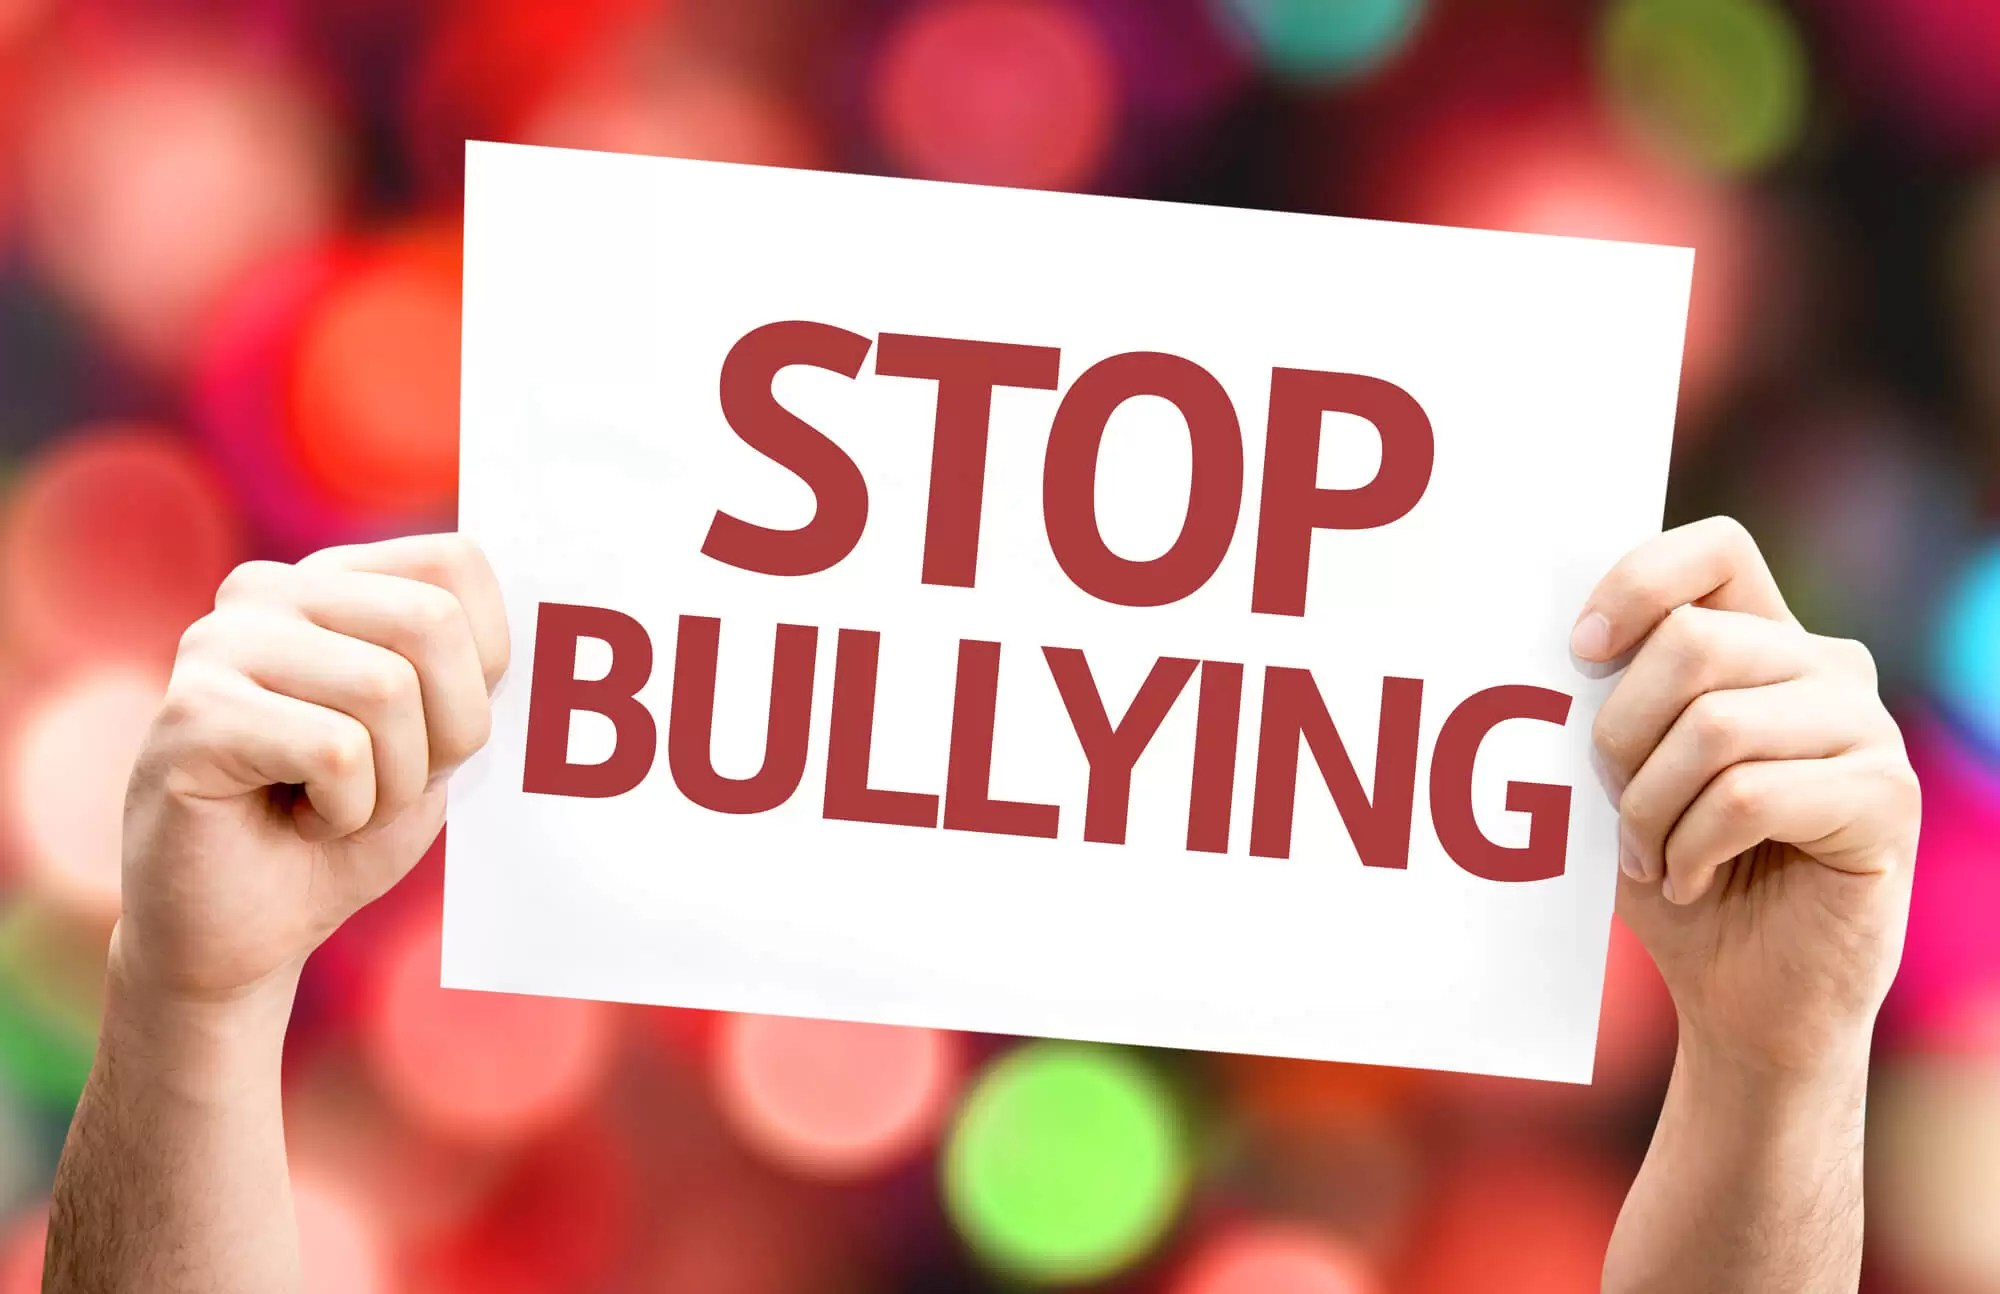 Bullying by use of Electronic Communication Device